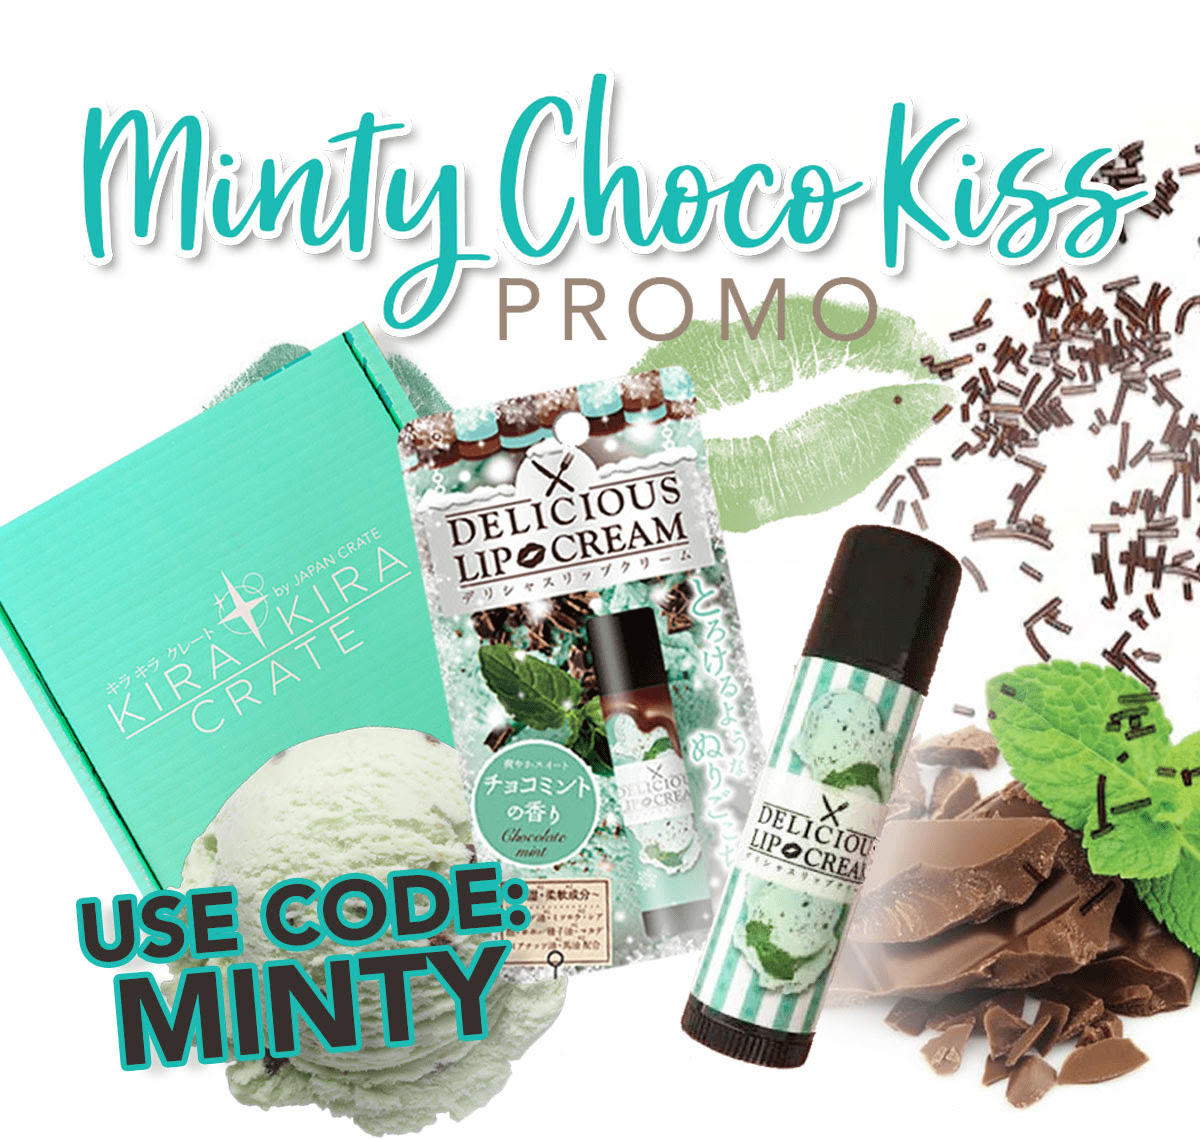 Kira Kira Crate Coupon: Get FREE Minty Choco Kiss Lip Cream + September 2018 Spoilers! LAST FEW DAYS!